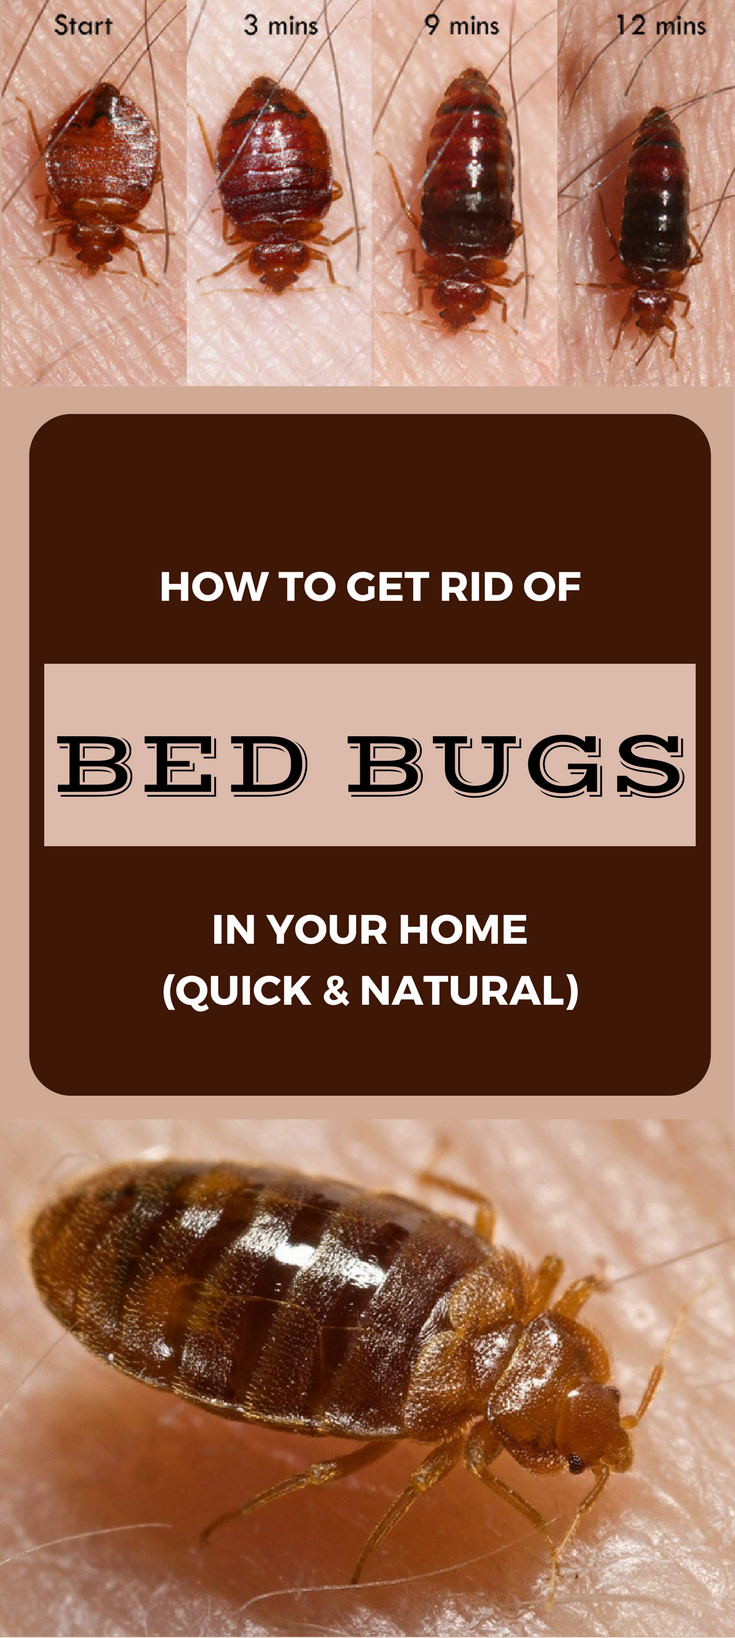 How to Get rid of Bed Bugs in Your Home (Quick and Natural